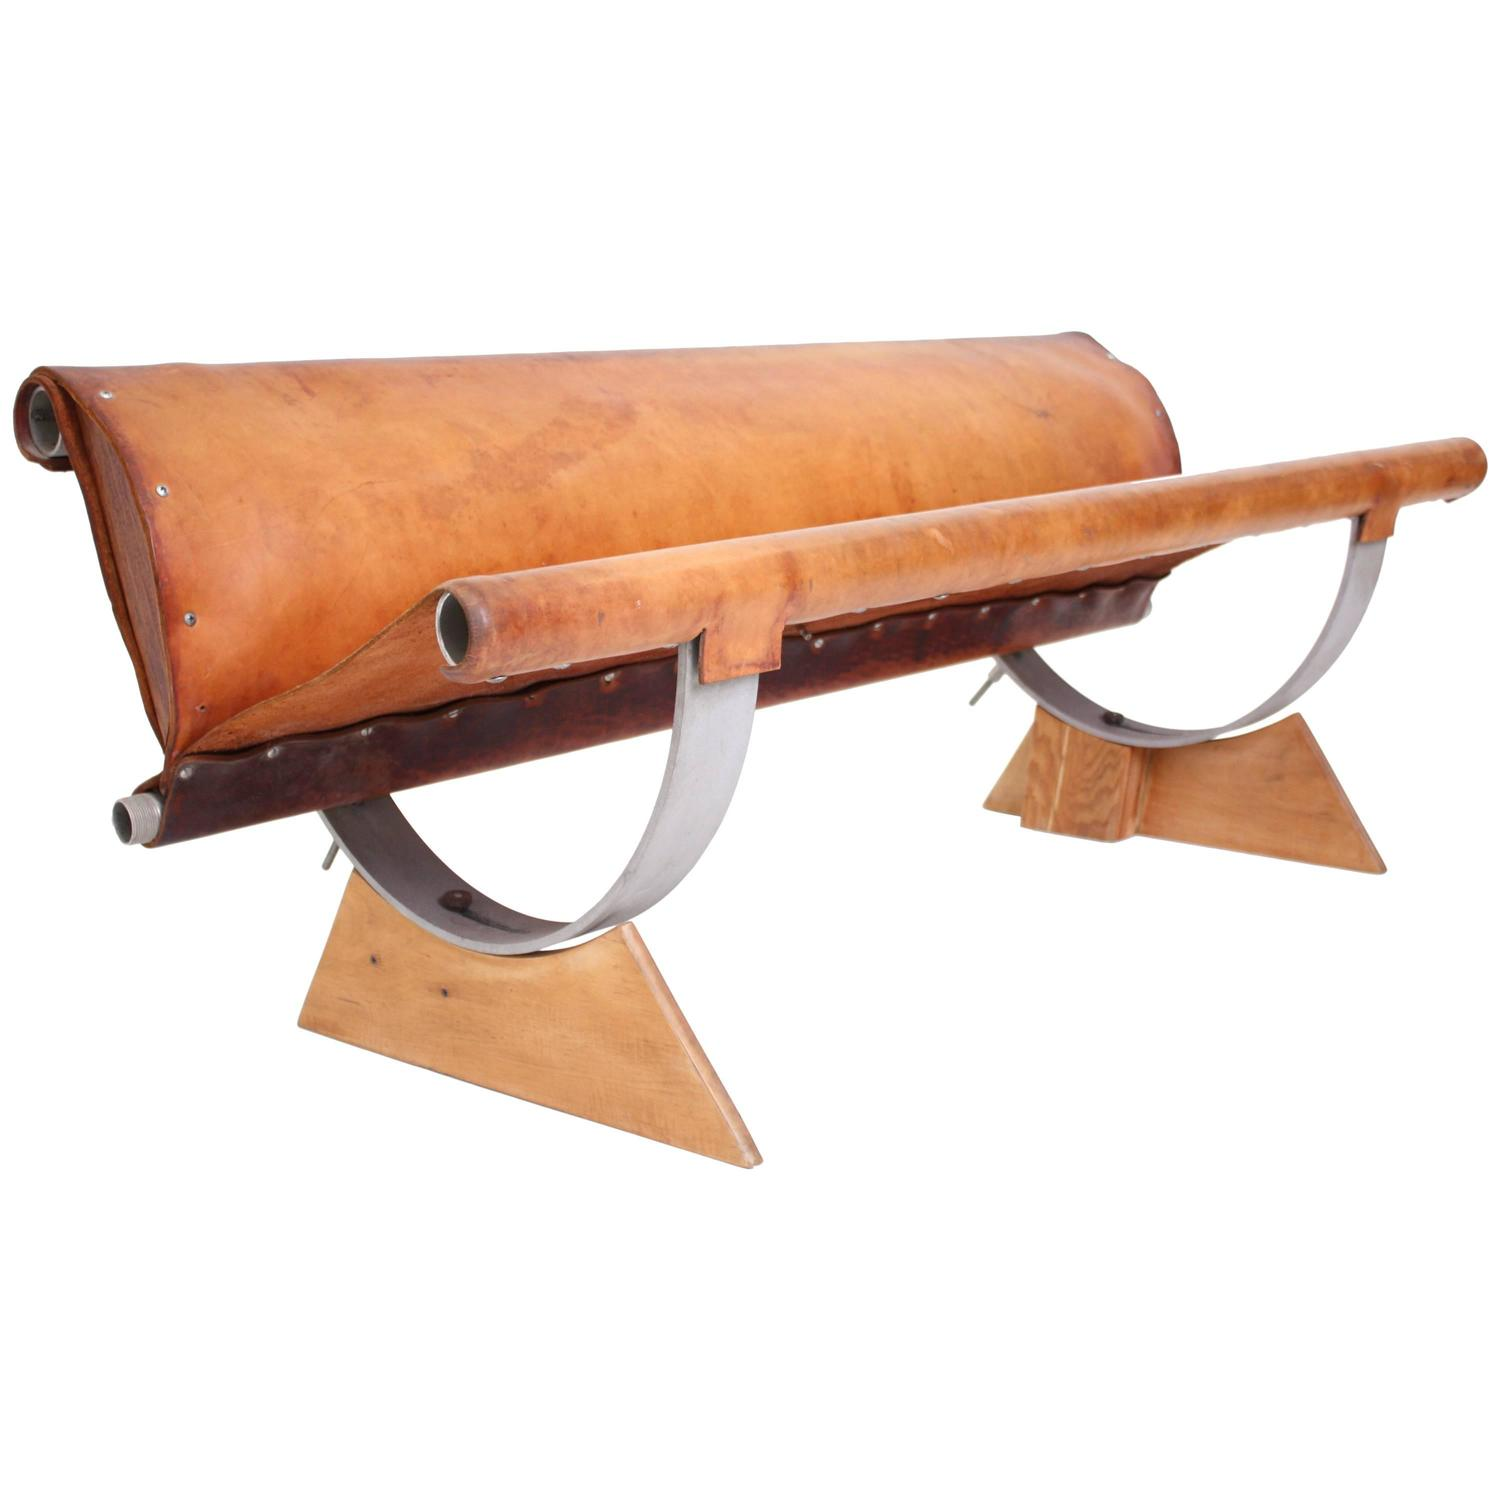 Rare Prototype Bench By Max Gottschalk For Sale At 1stdibs